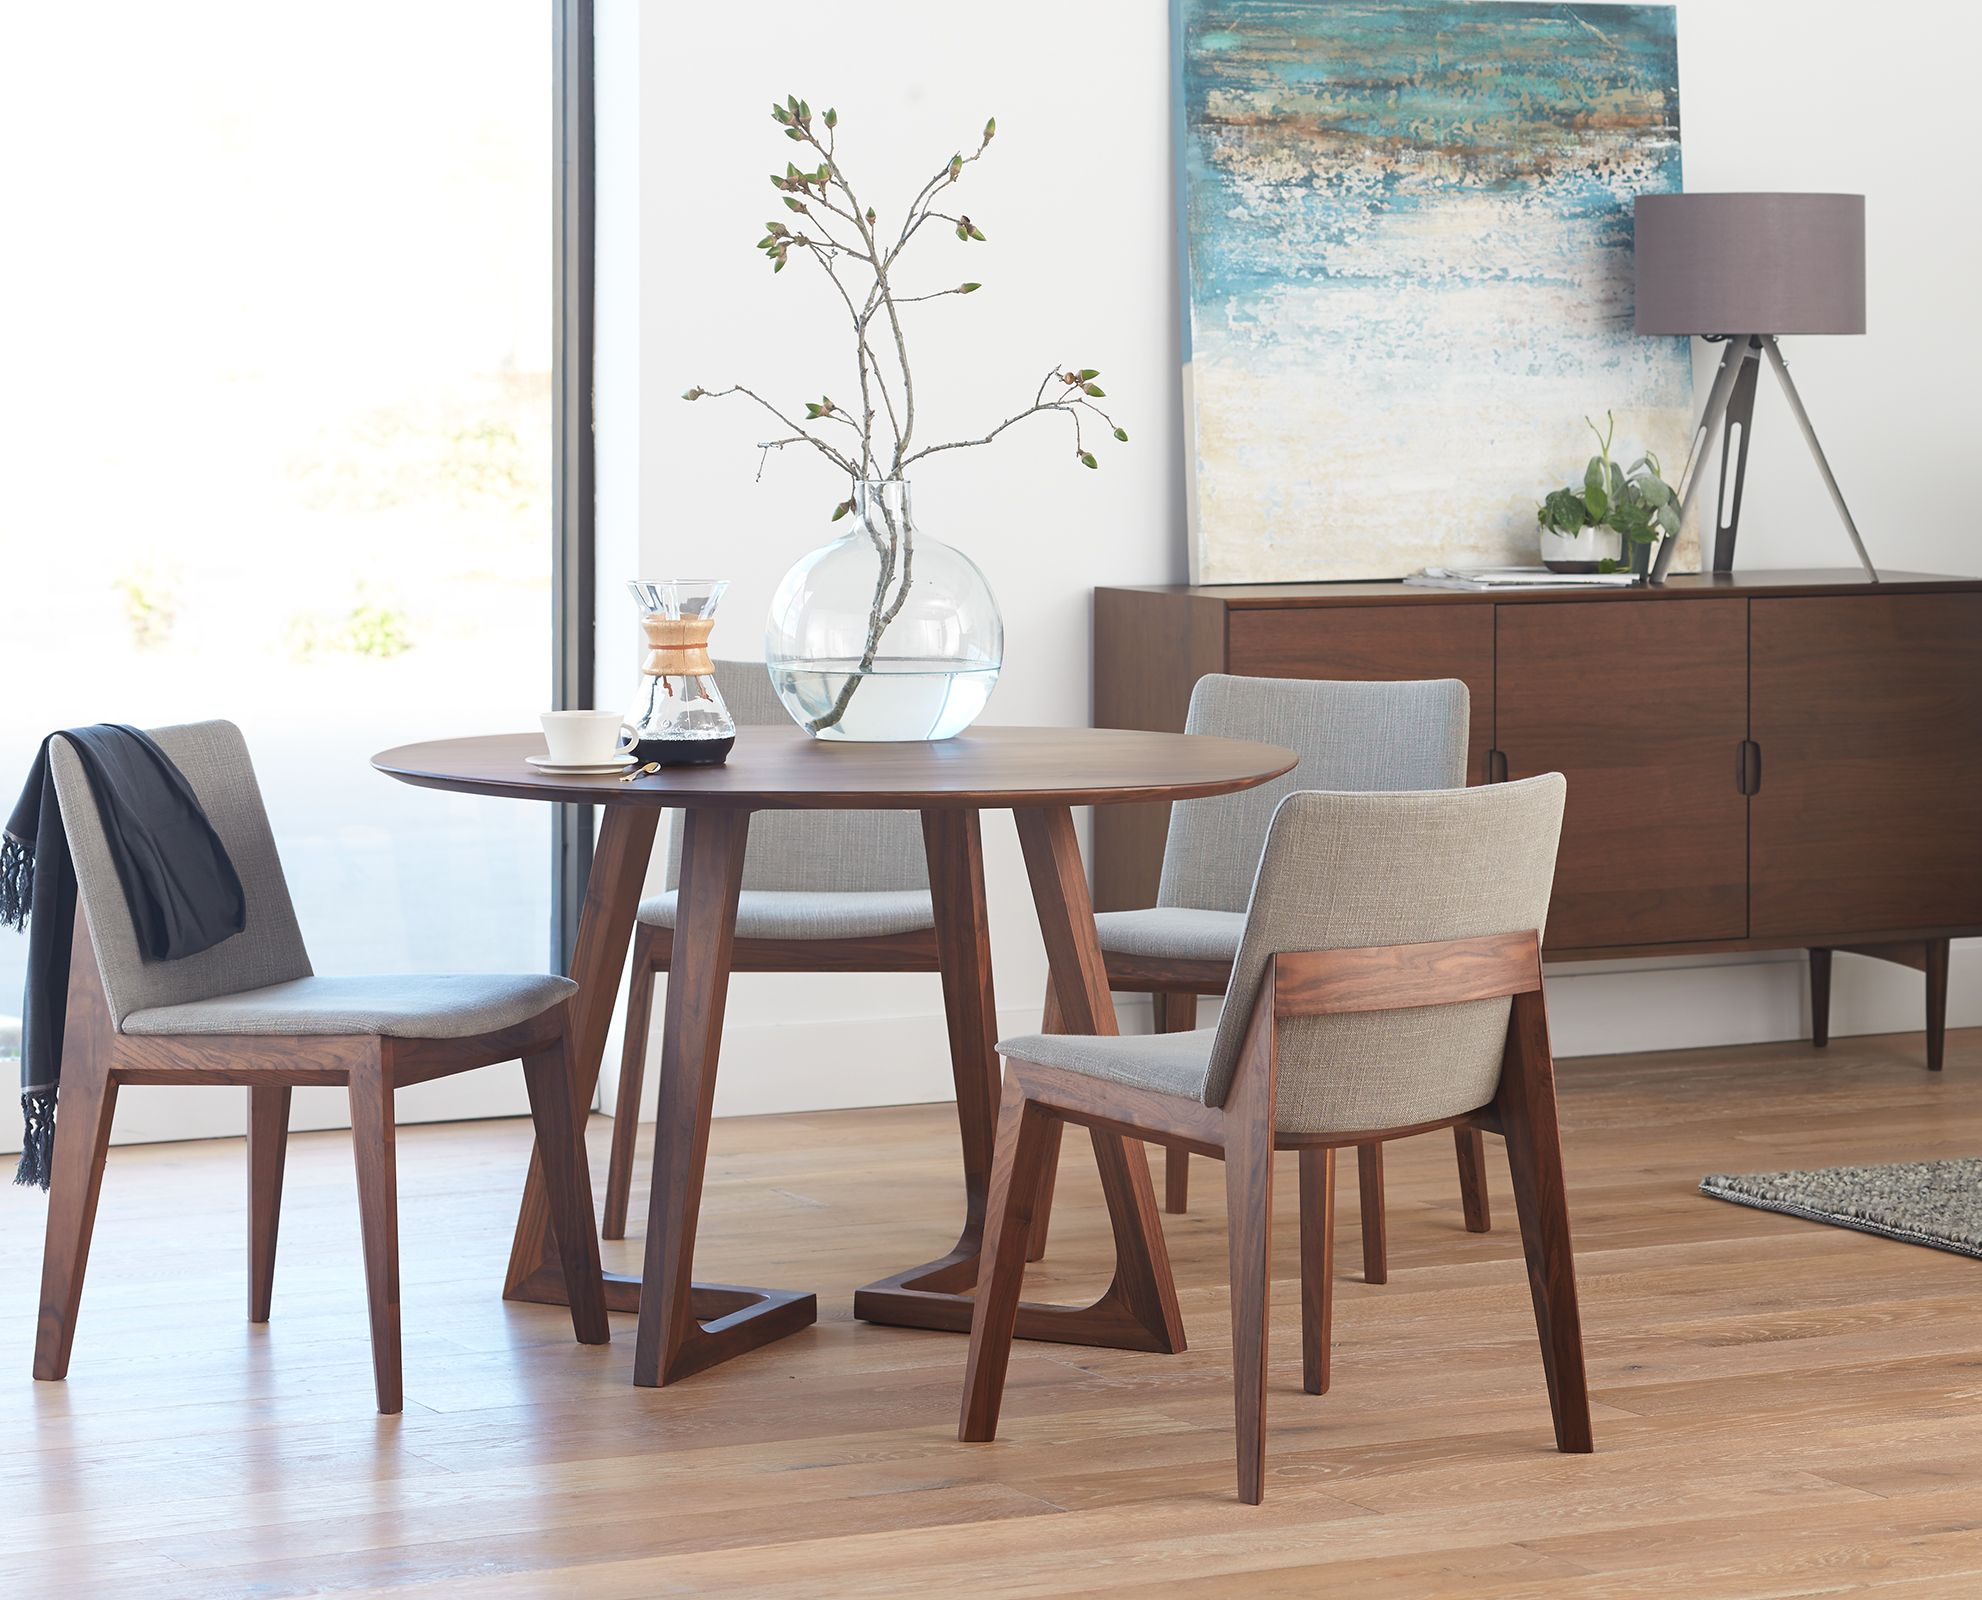 Best 25 Round Table And Chairs Ideas On Pinterest